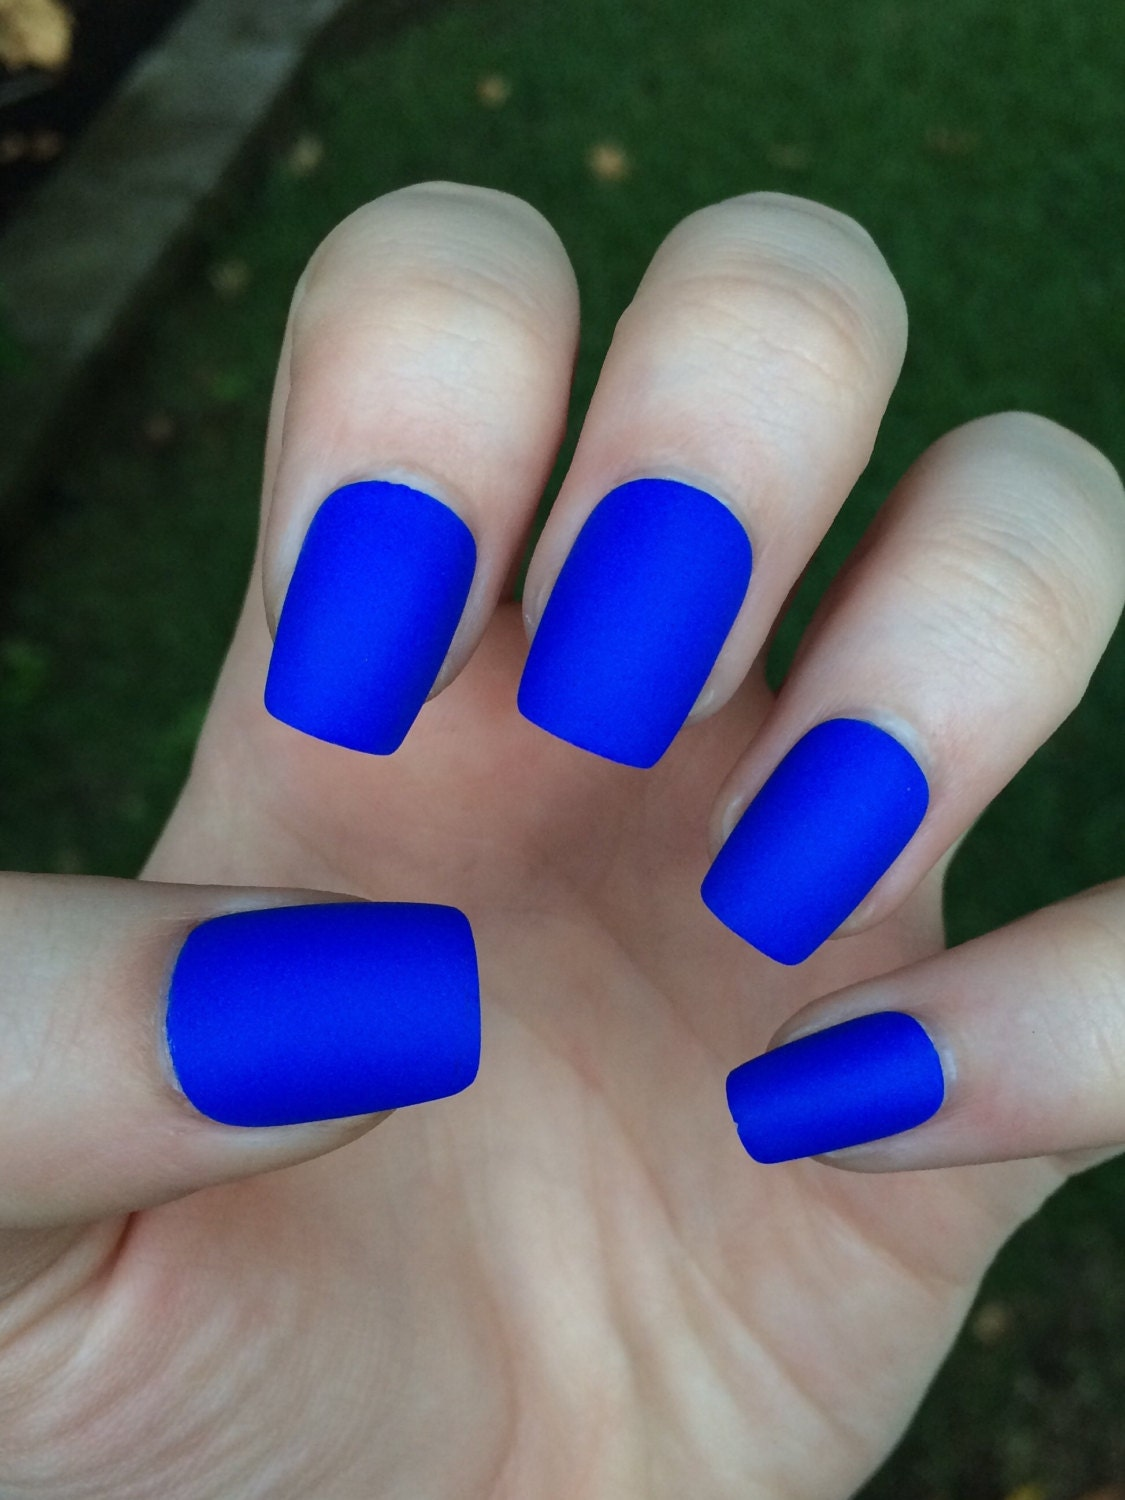 blue fake nails matte nails matte press on nails